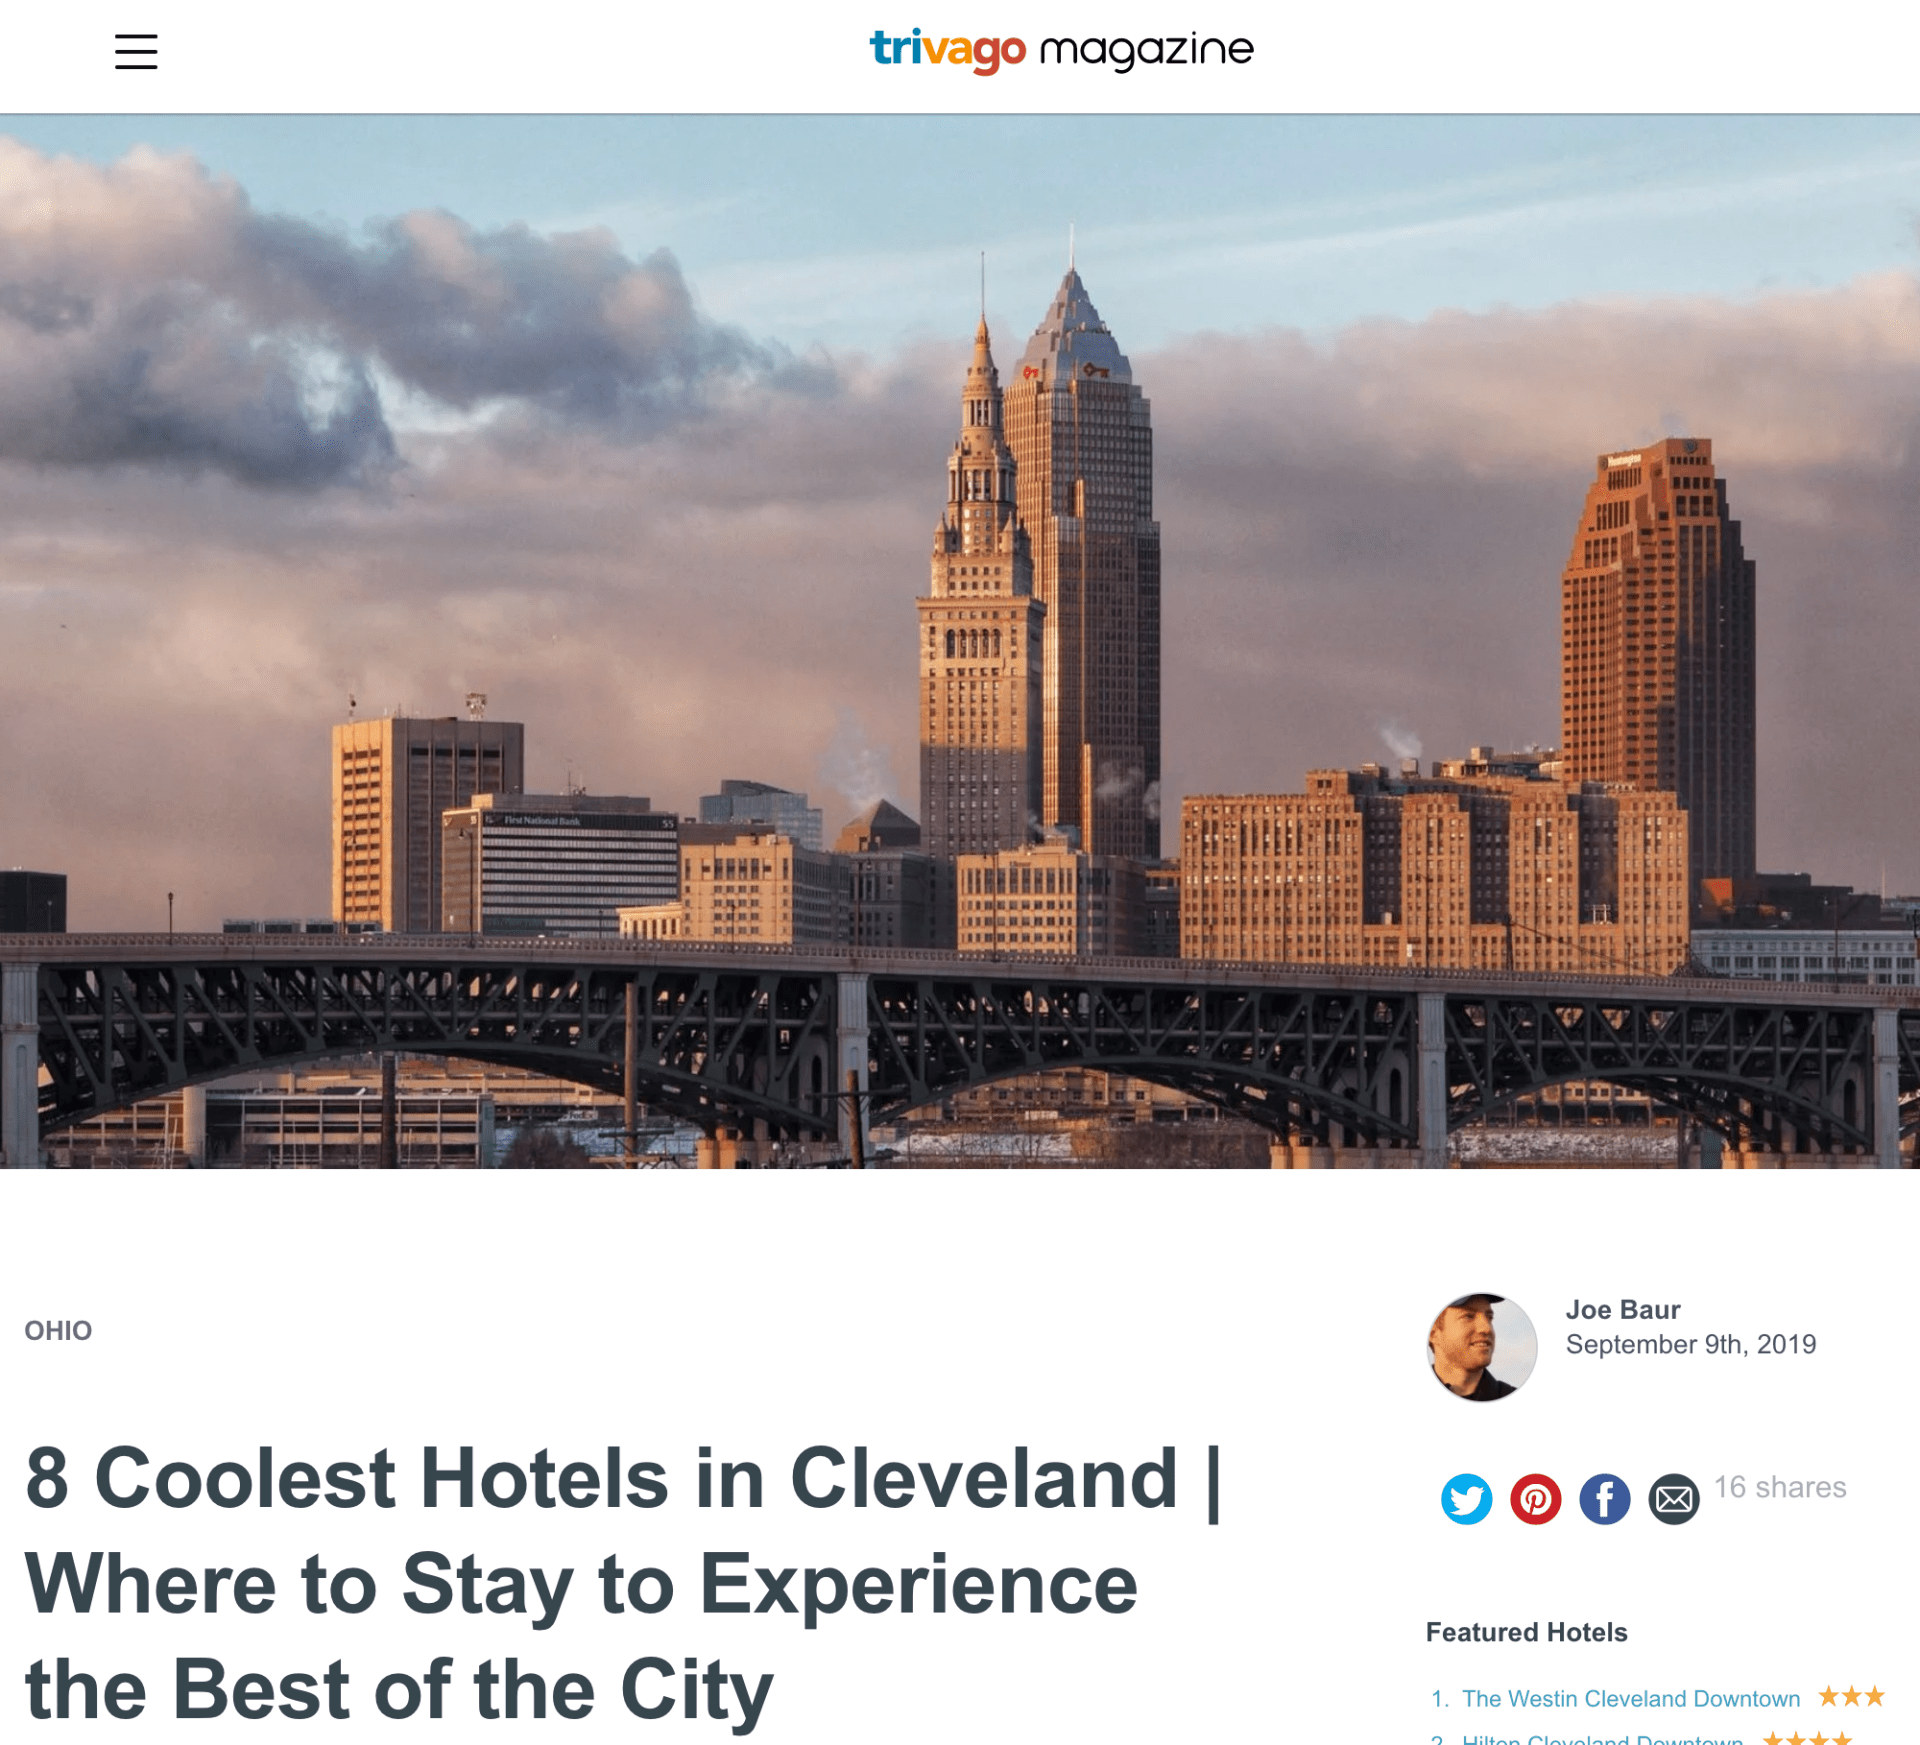 8 Coolest Hotels in Cleveland   Where to Stay to Experience the Best of the City - trivago Magazine